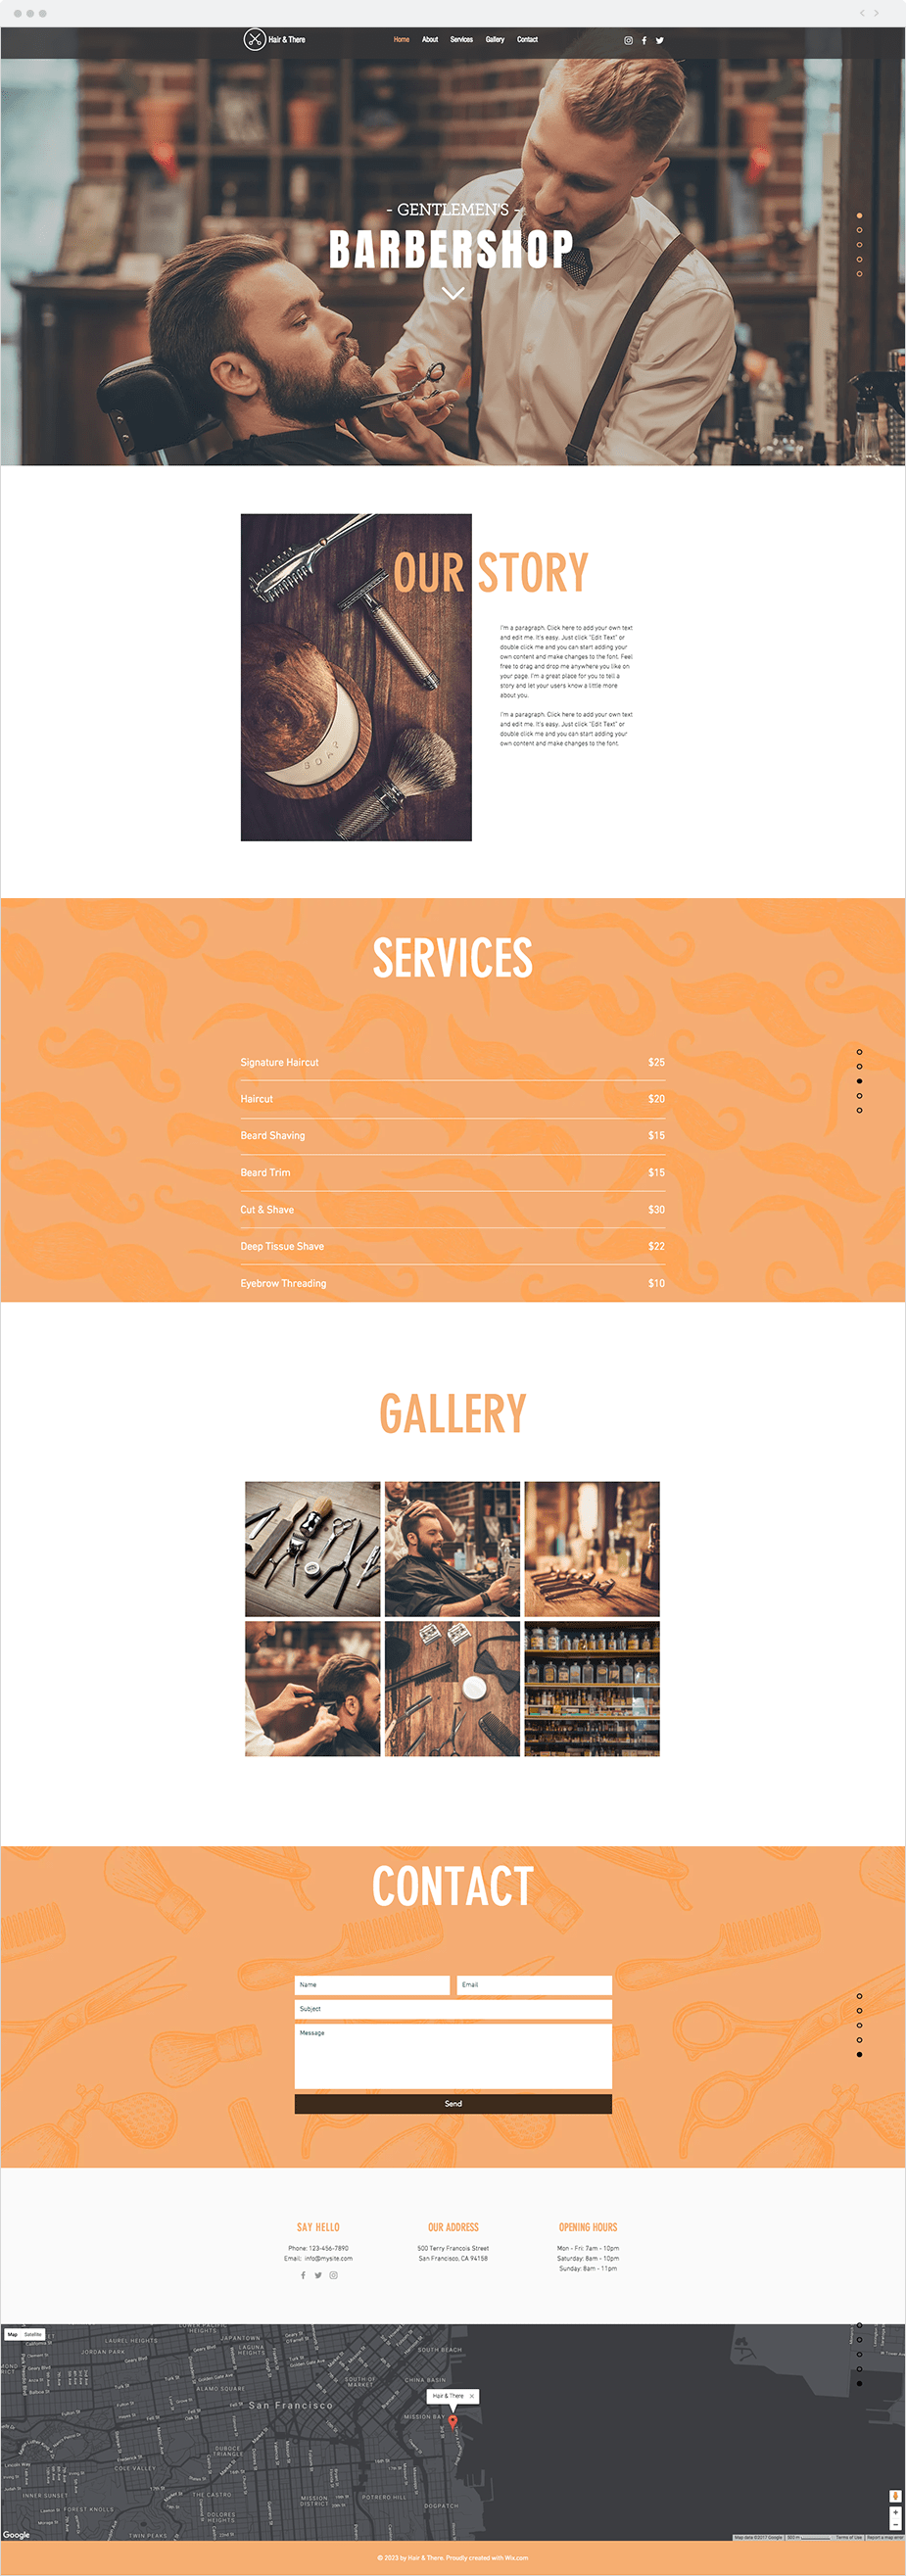 Wix Templates: Barbershop